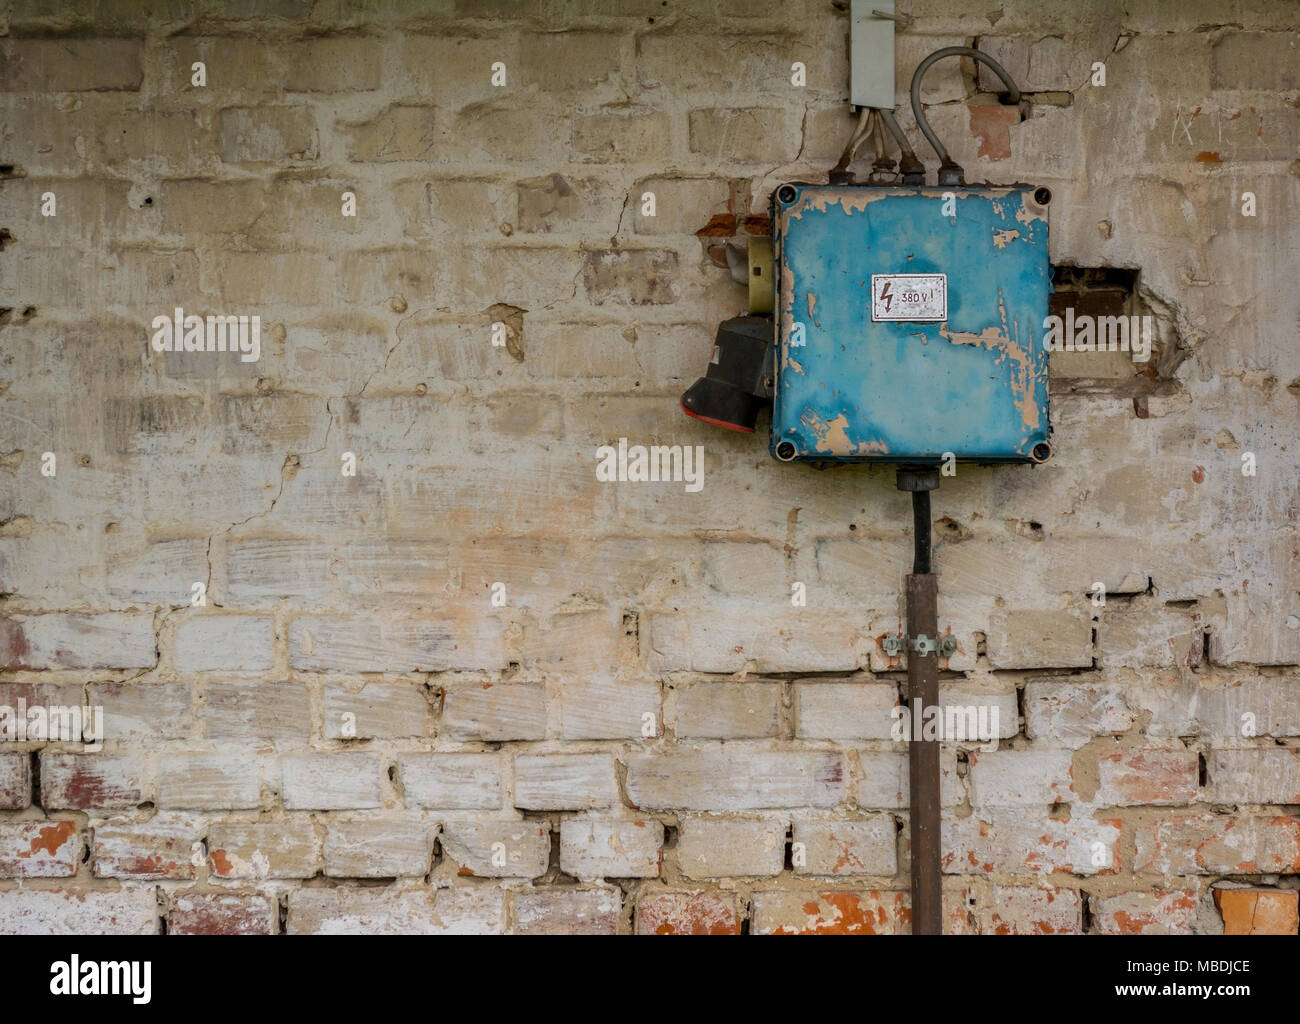 old electrical fuse box stock photos & old electrical fuse box stock stainless steel texture old bad rusty switch box on weathered wall stock image